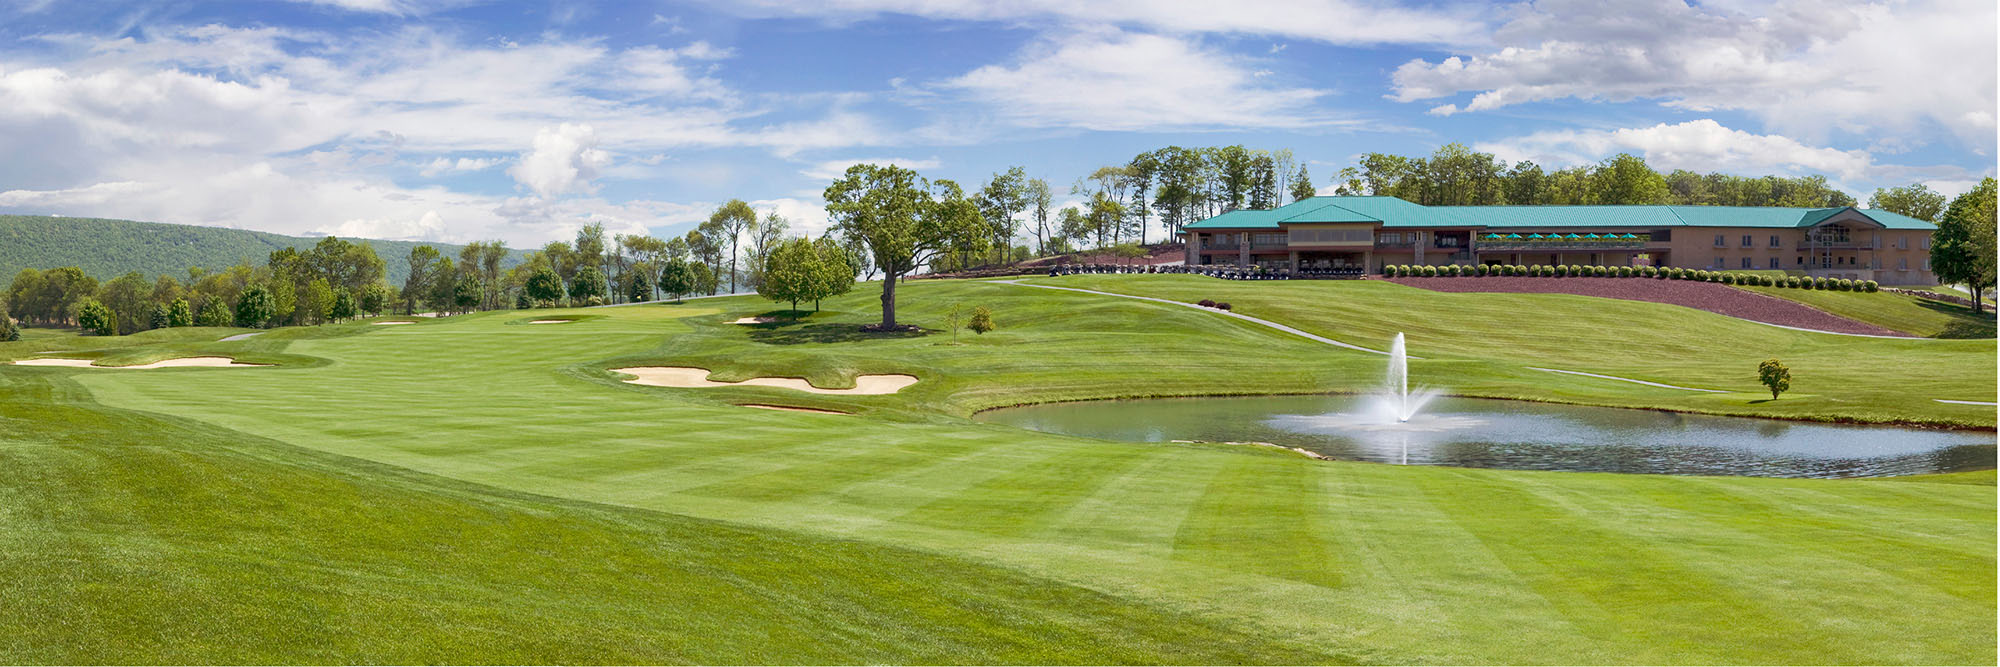 Golf Course Image - Woodstone Country Club No. 18